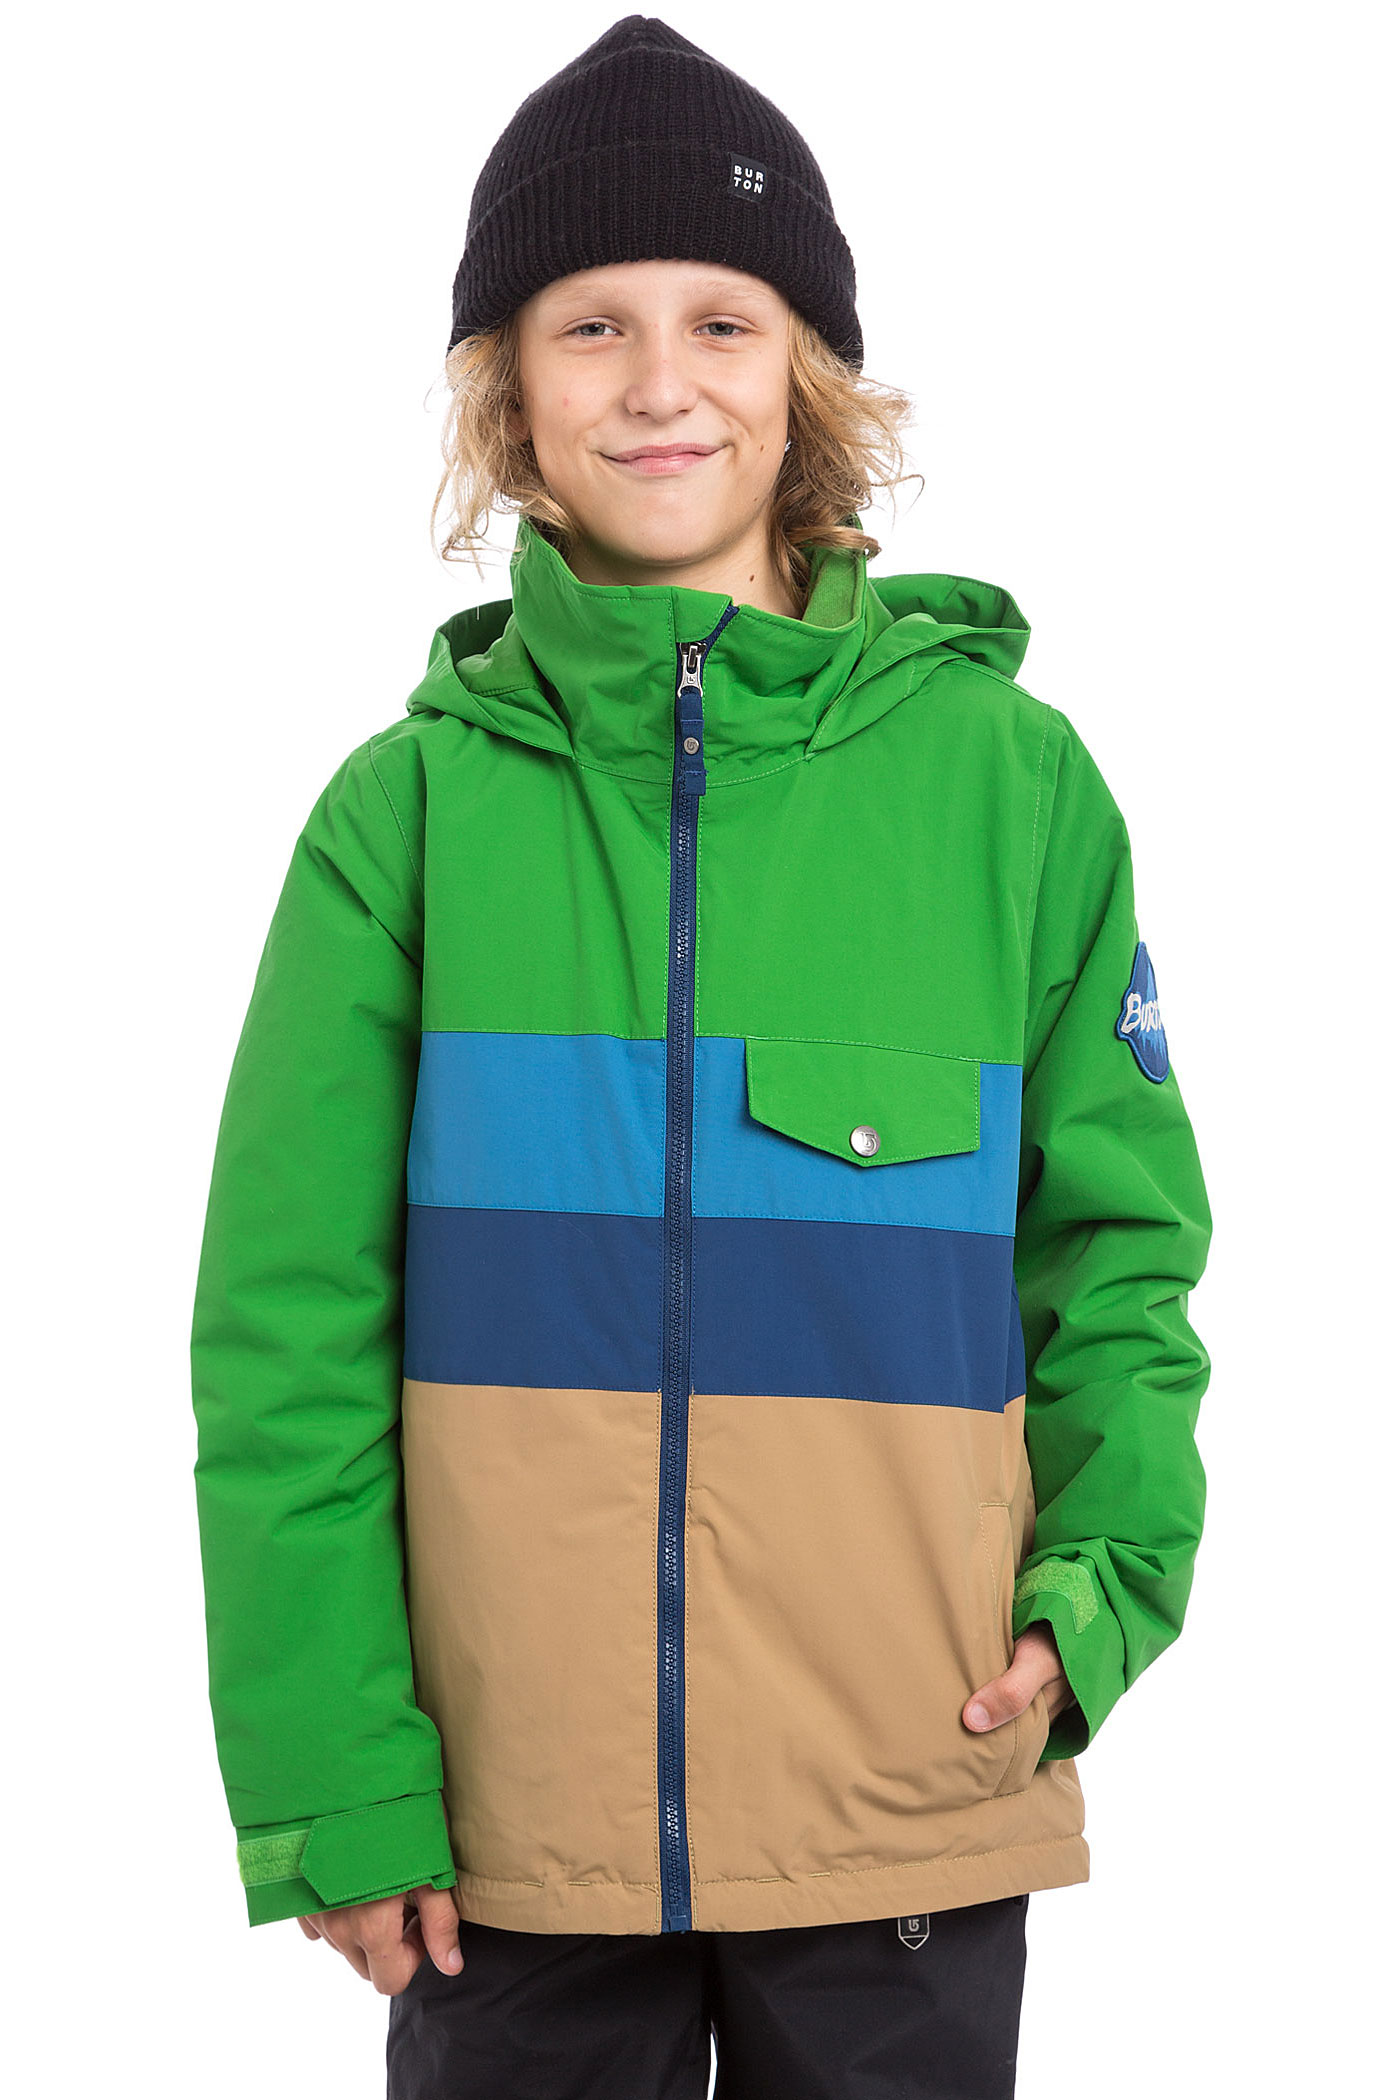 Where to buy ski clothes online